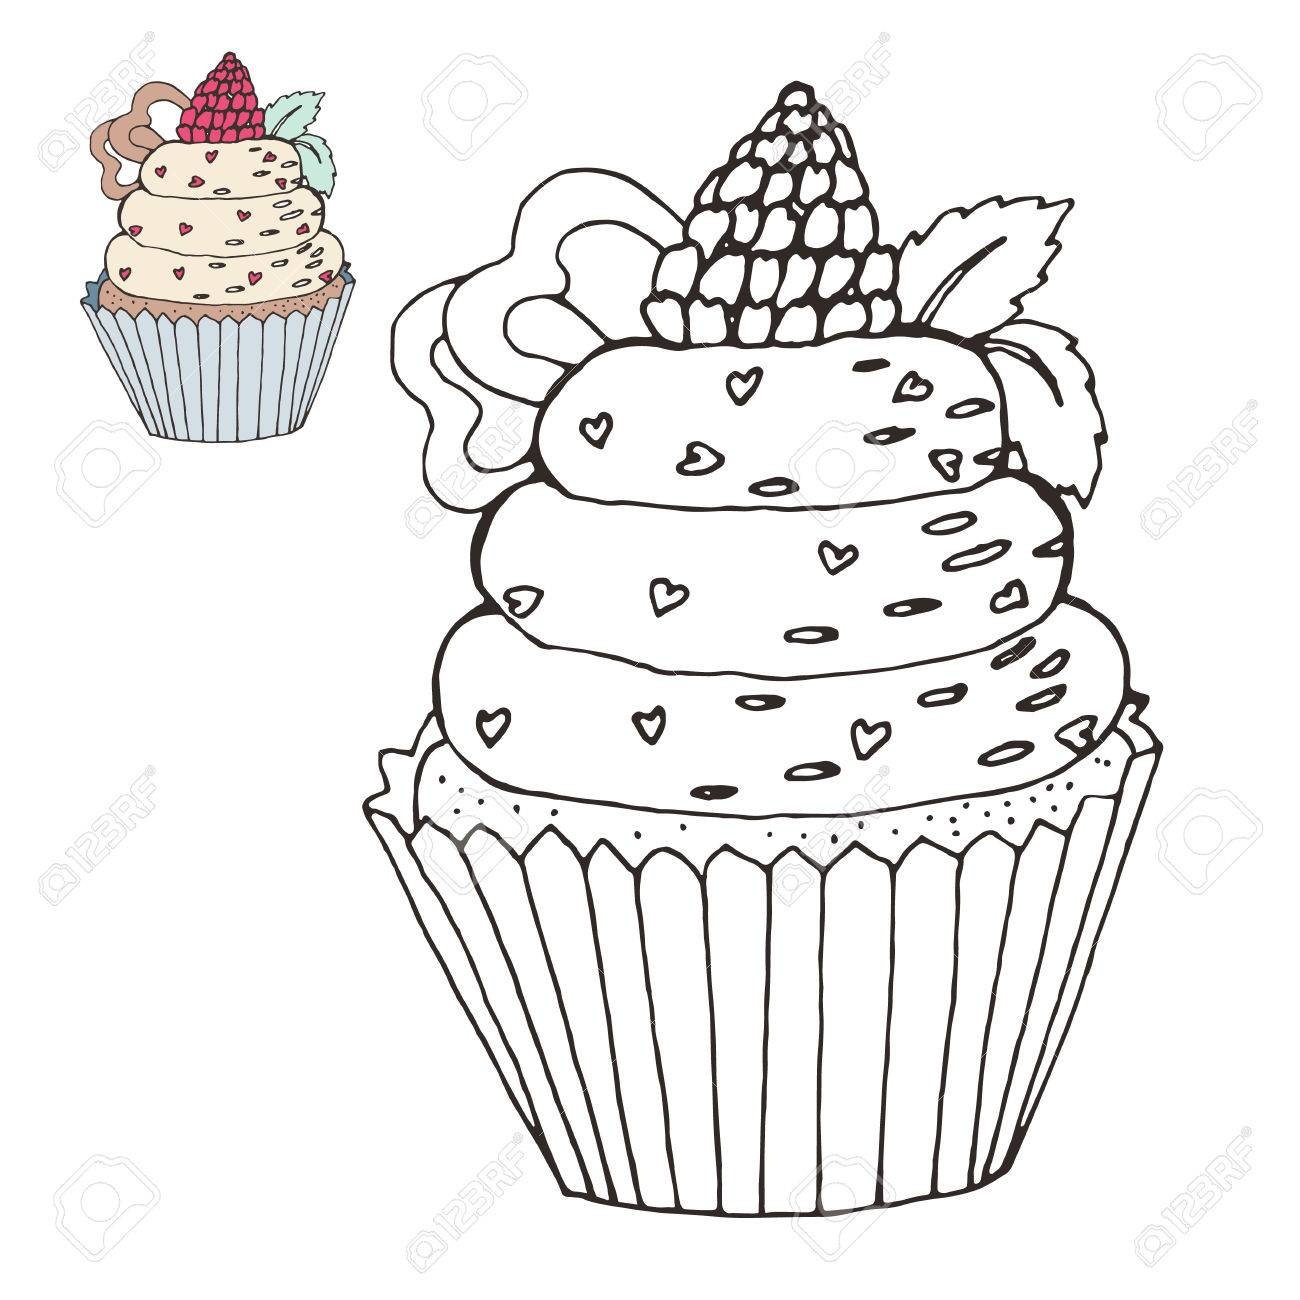 Coloring Page With A Cake. Color Version. Royalty Free Cliparts ...